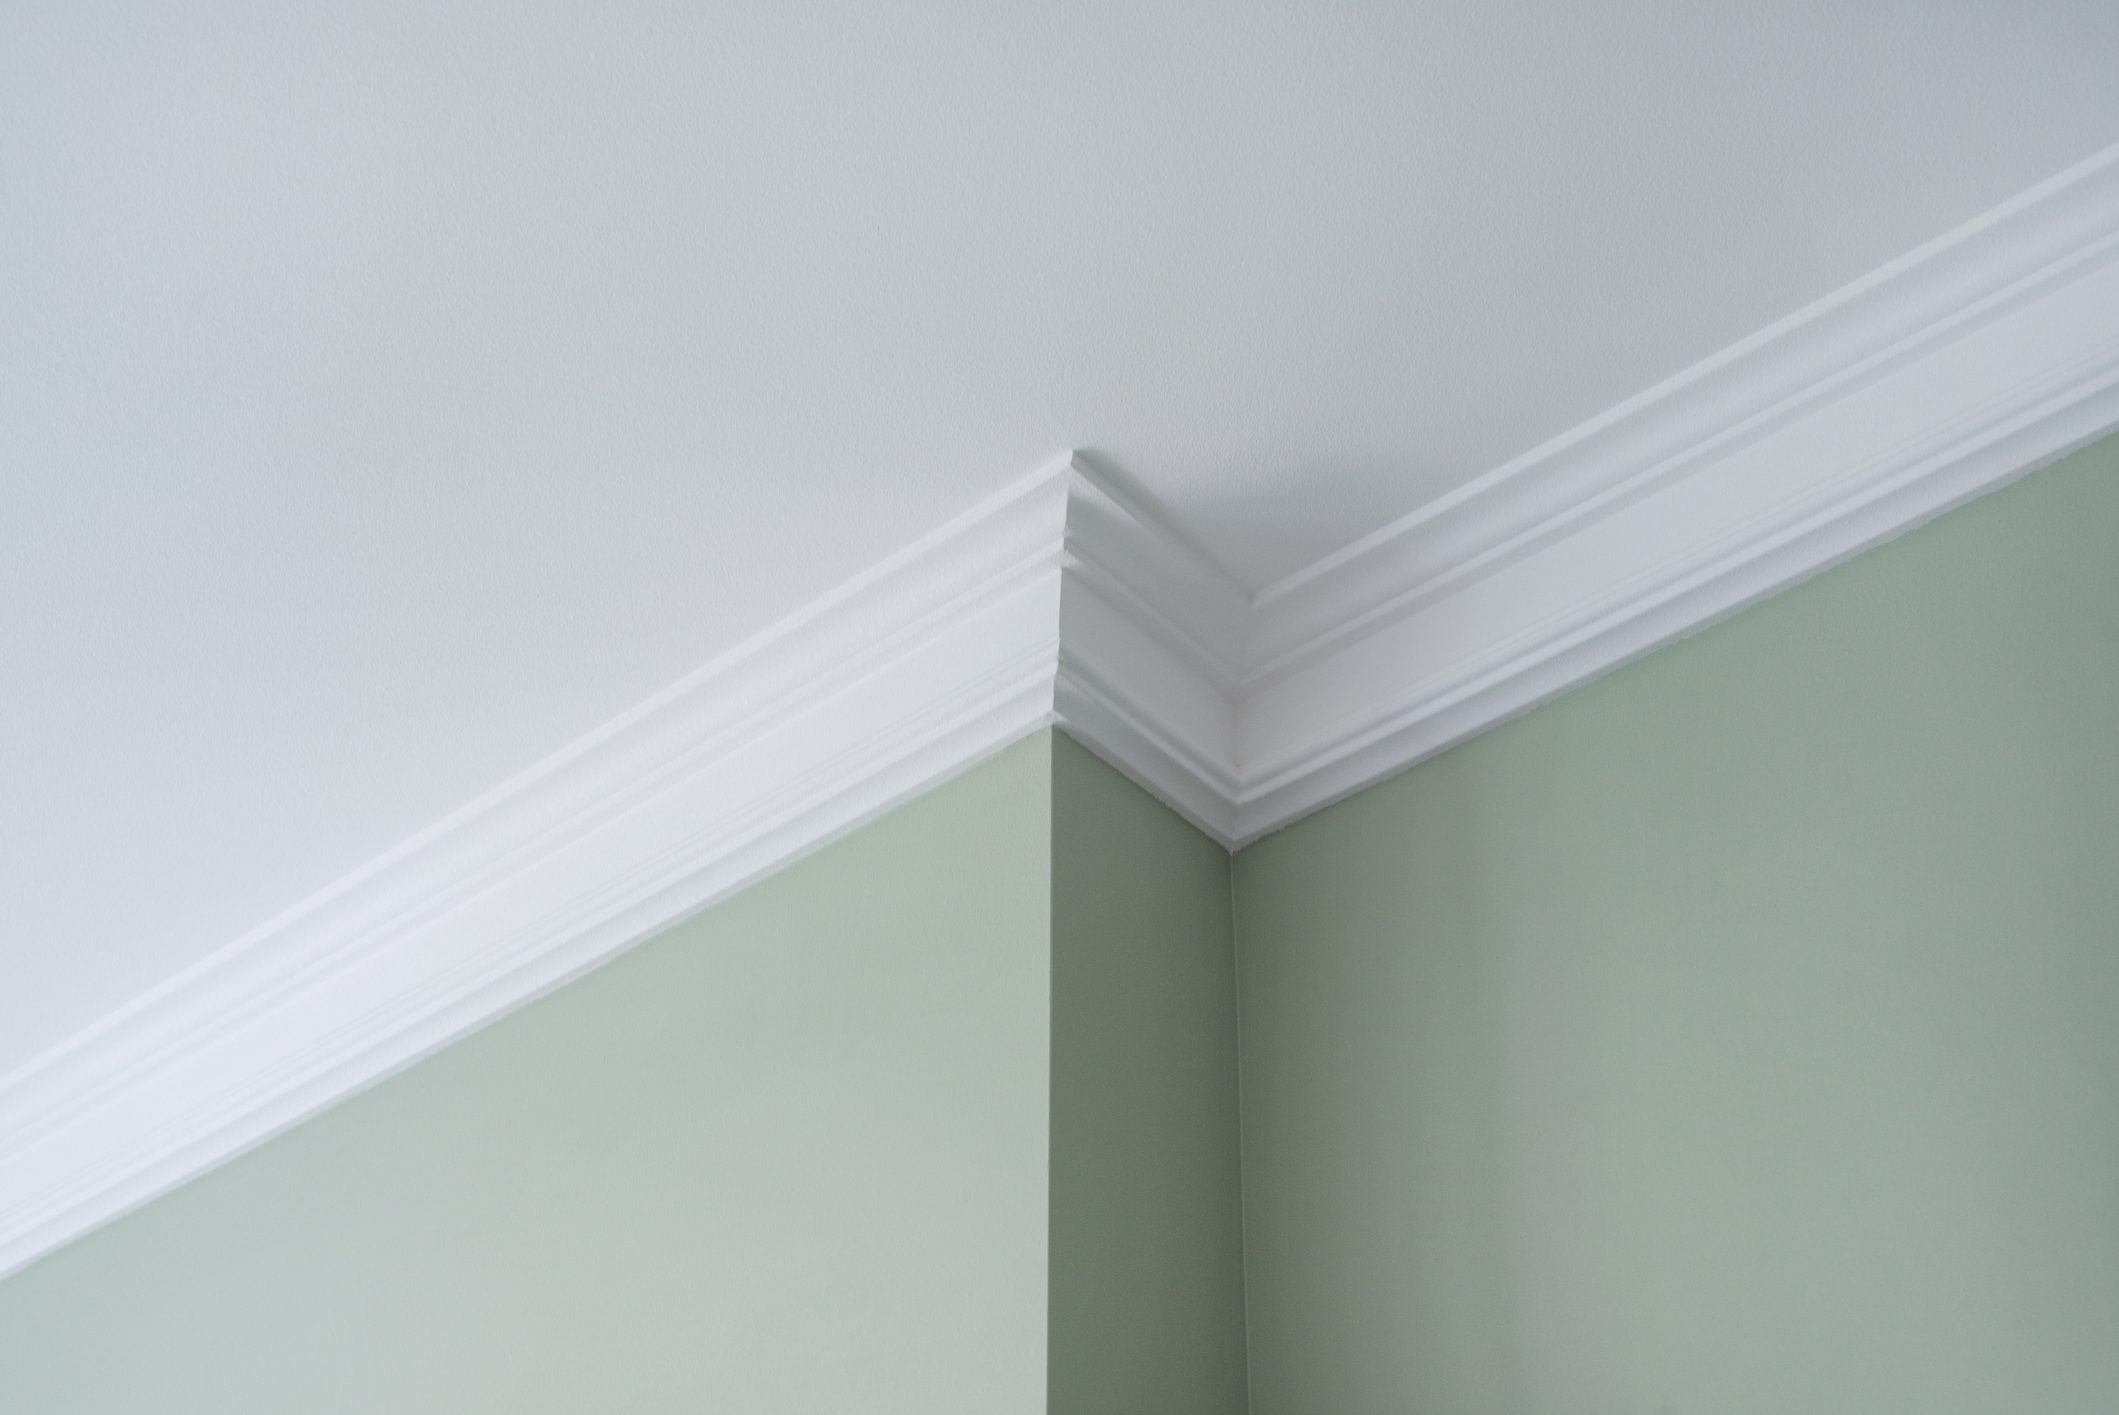 Ceiling crown moldings in the interior, detail of intricate corner.